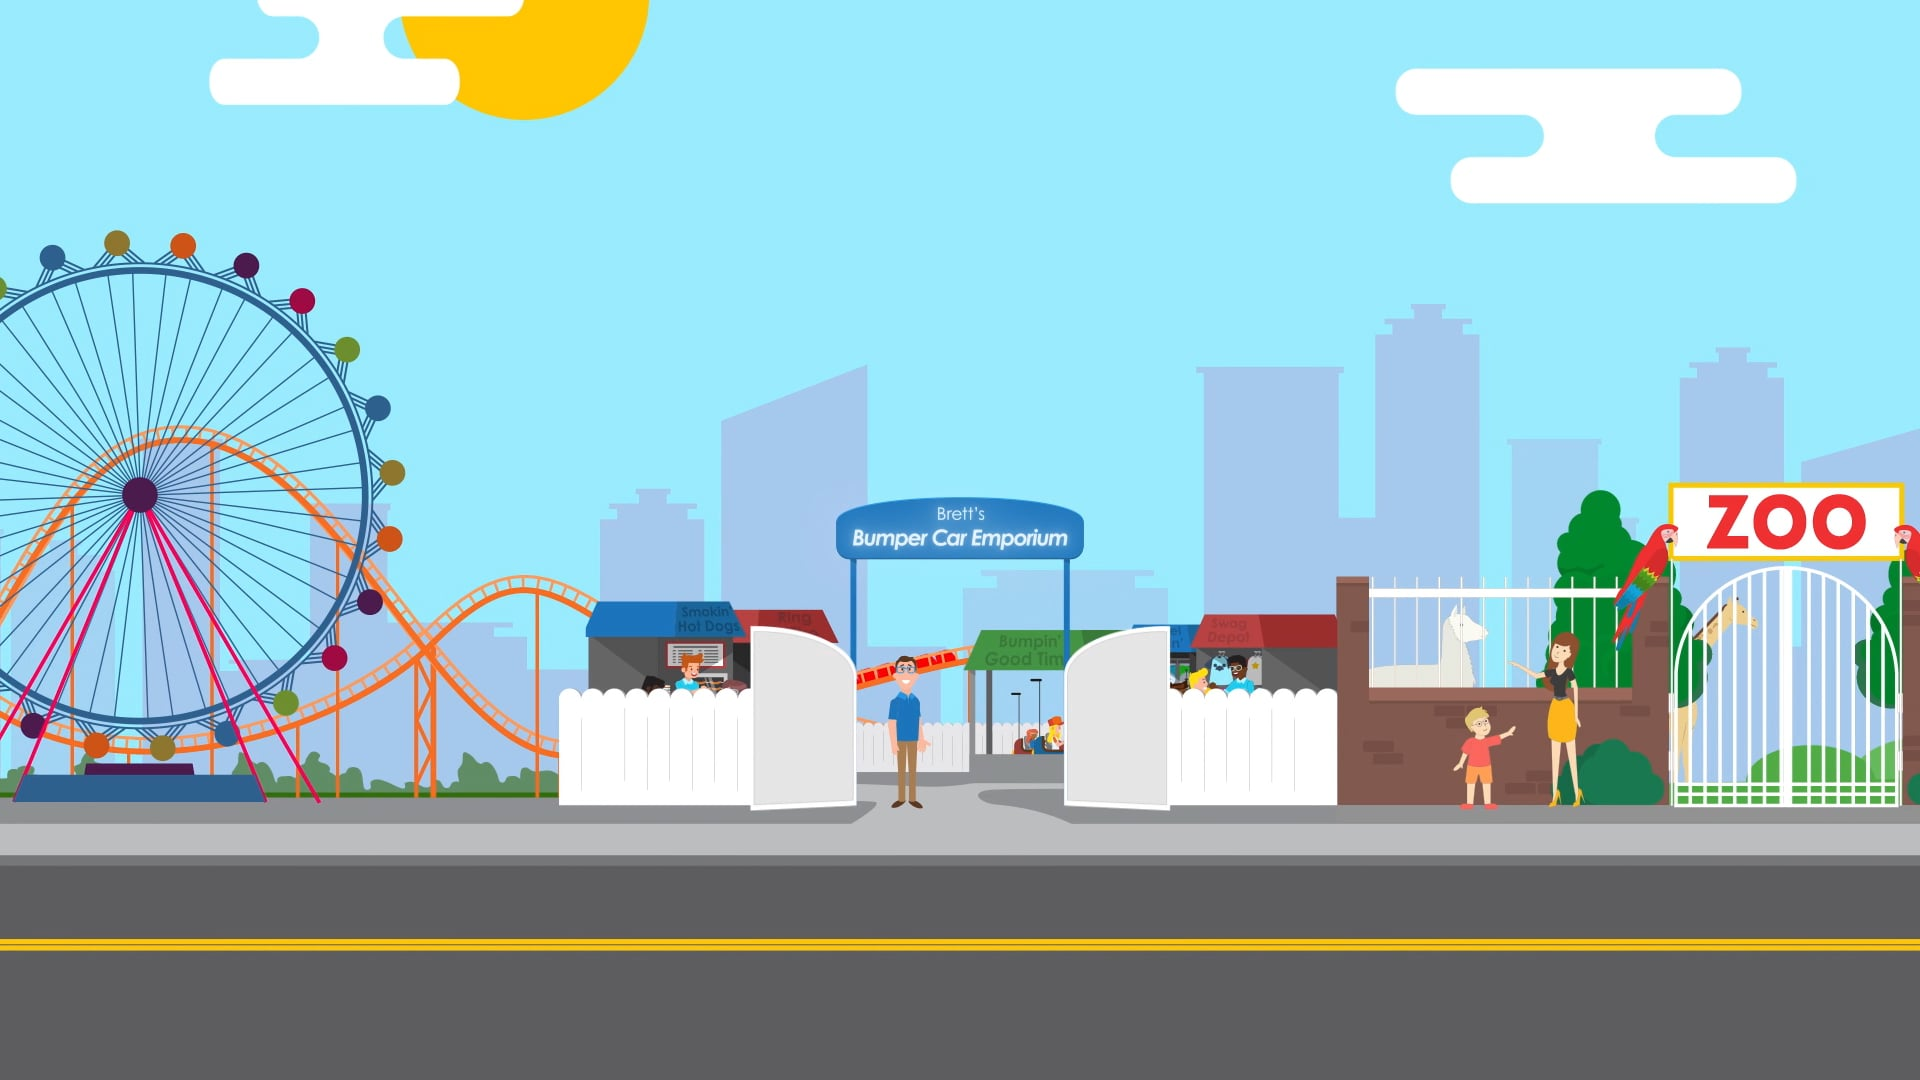 A 2D animation of a family at a zoo or fair